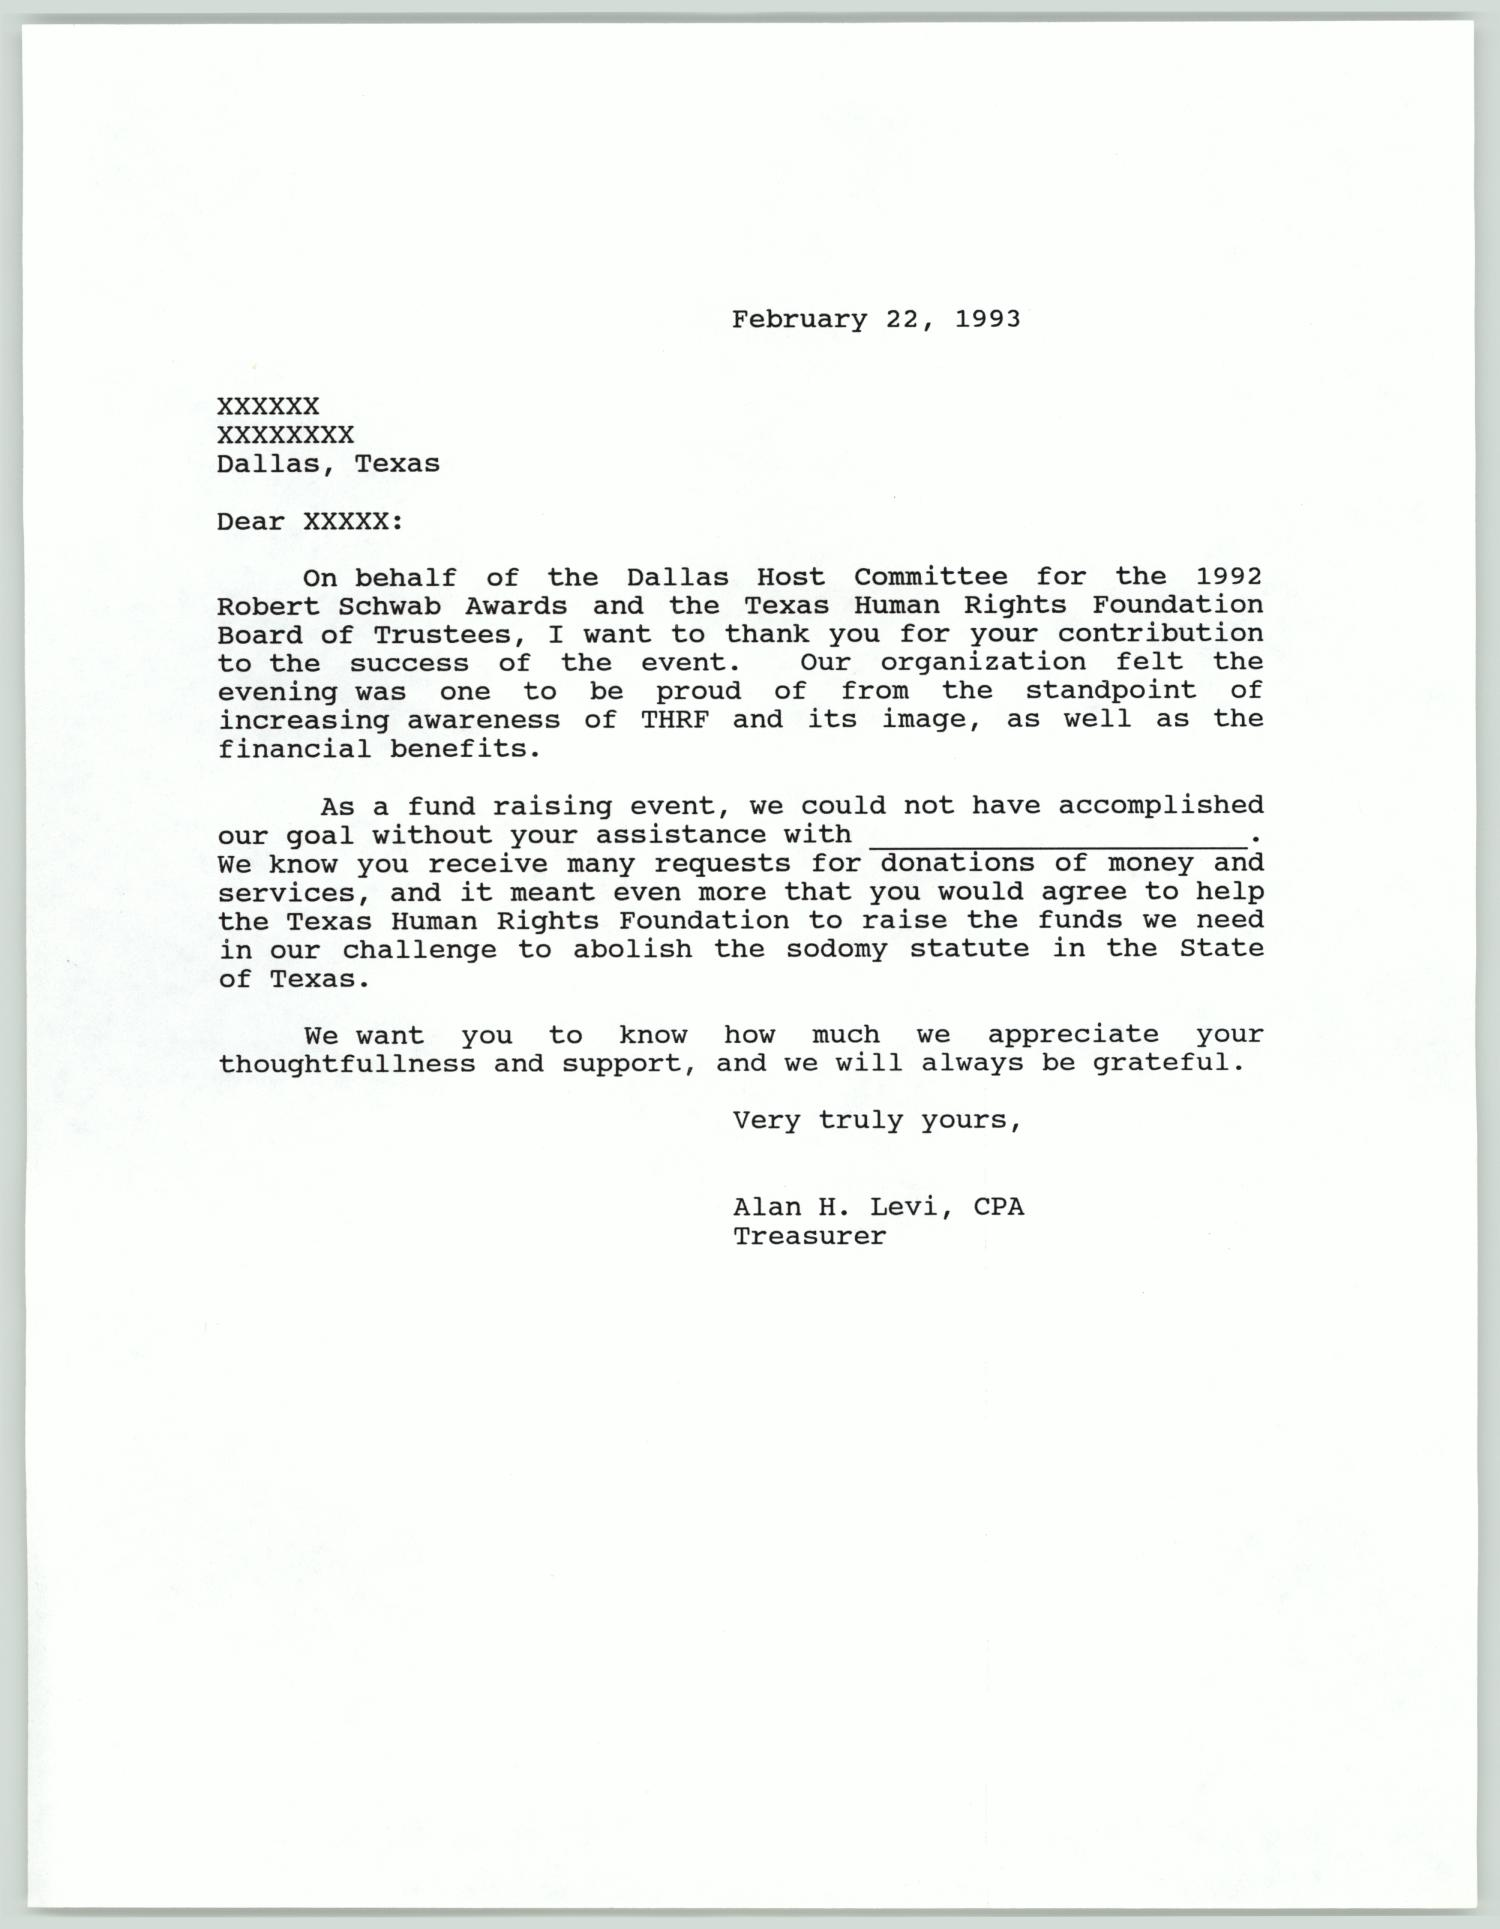 Letter template for donations to the Texas Human Rights